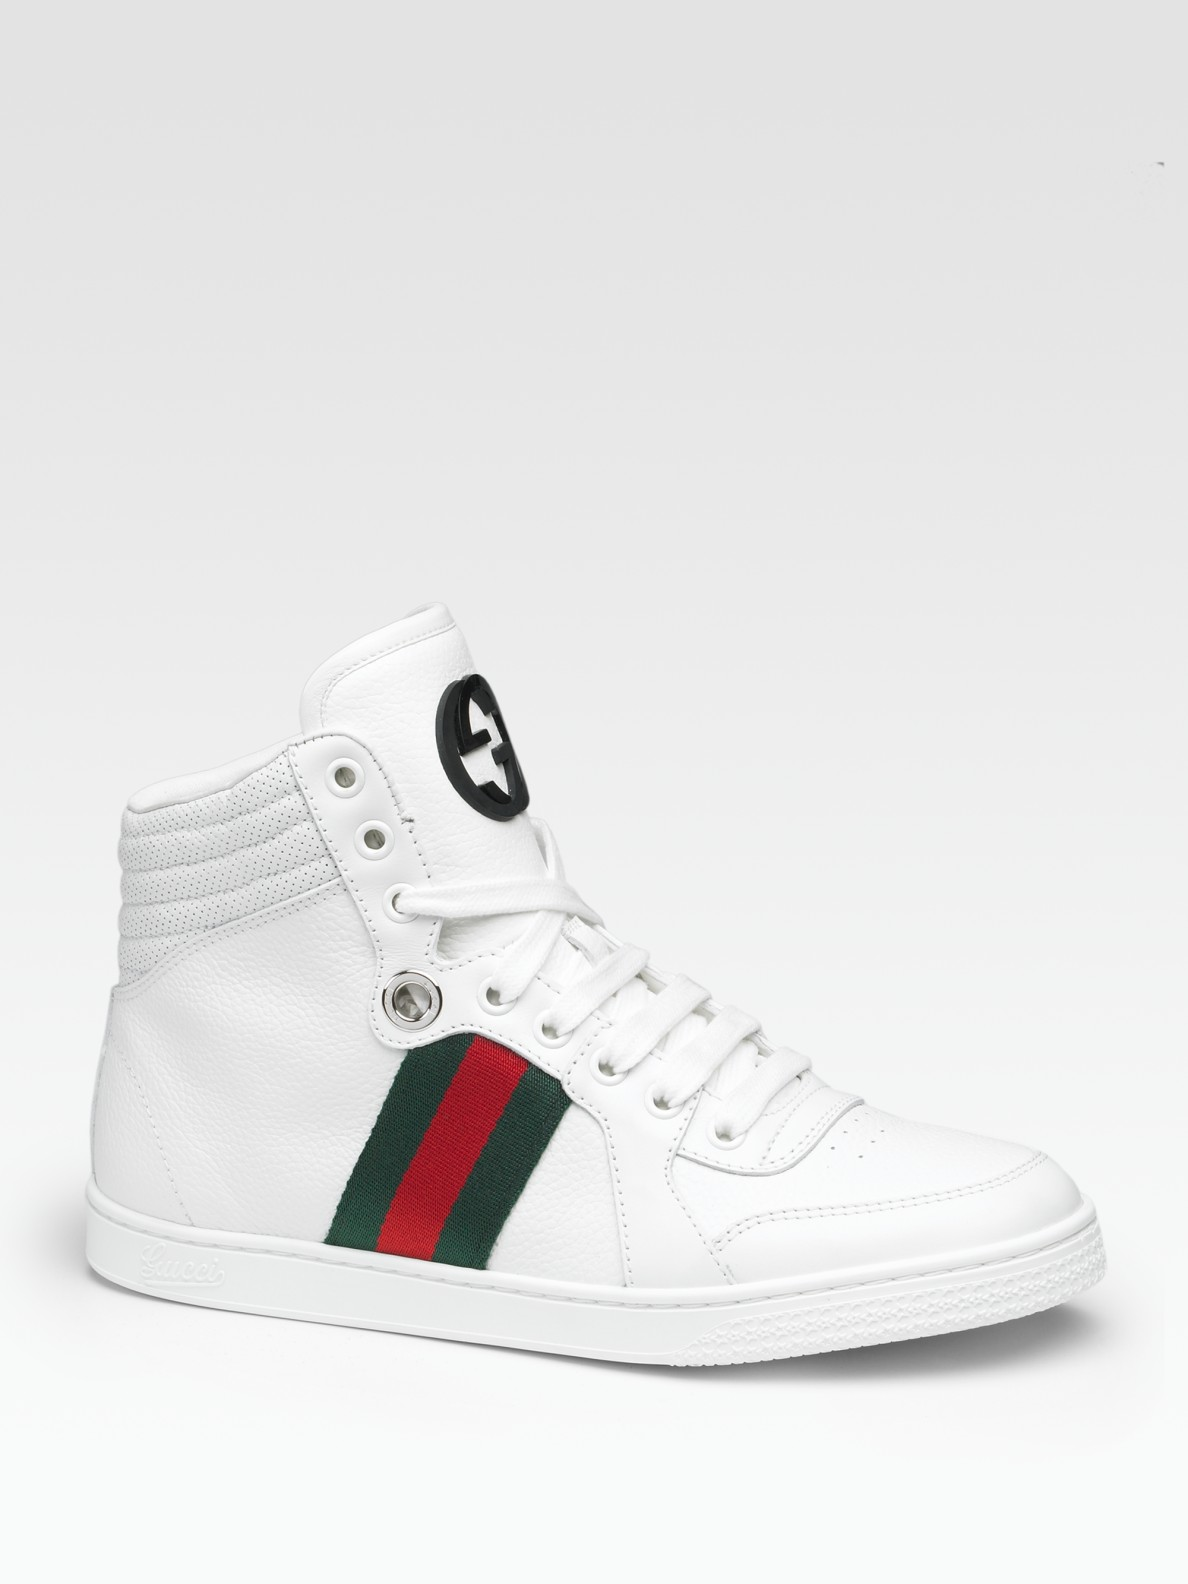 d95859ed7 Gucci Coda Leather Lace-up Sneakers in White - Lyst